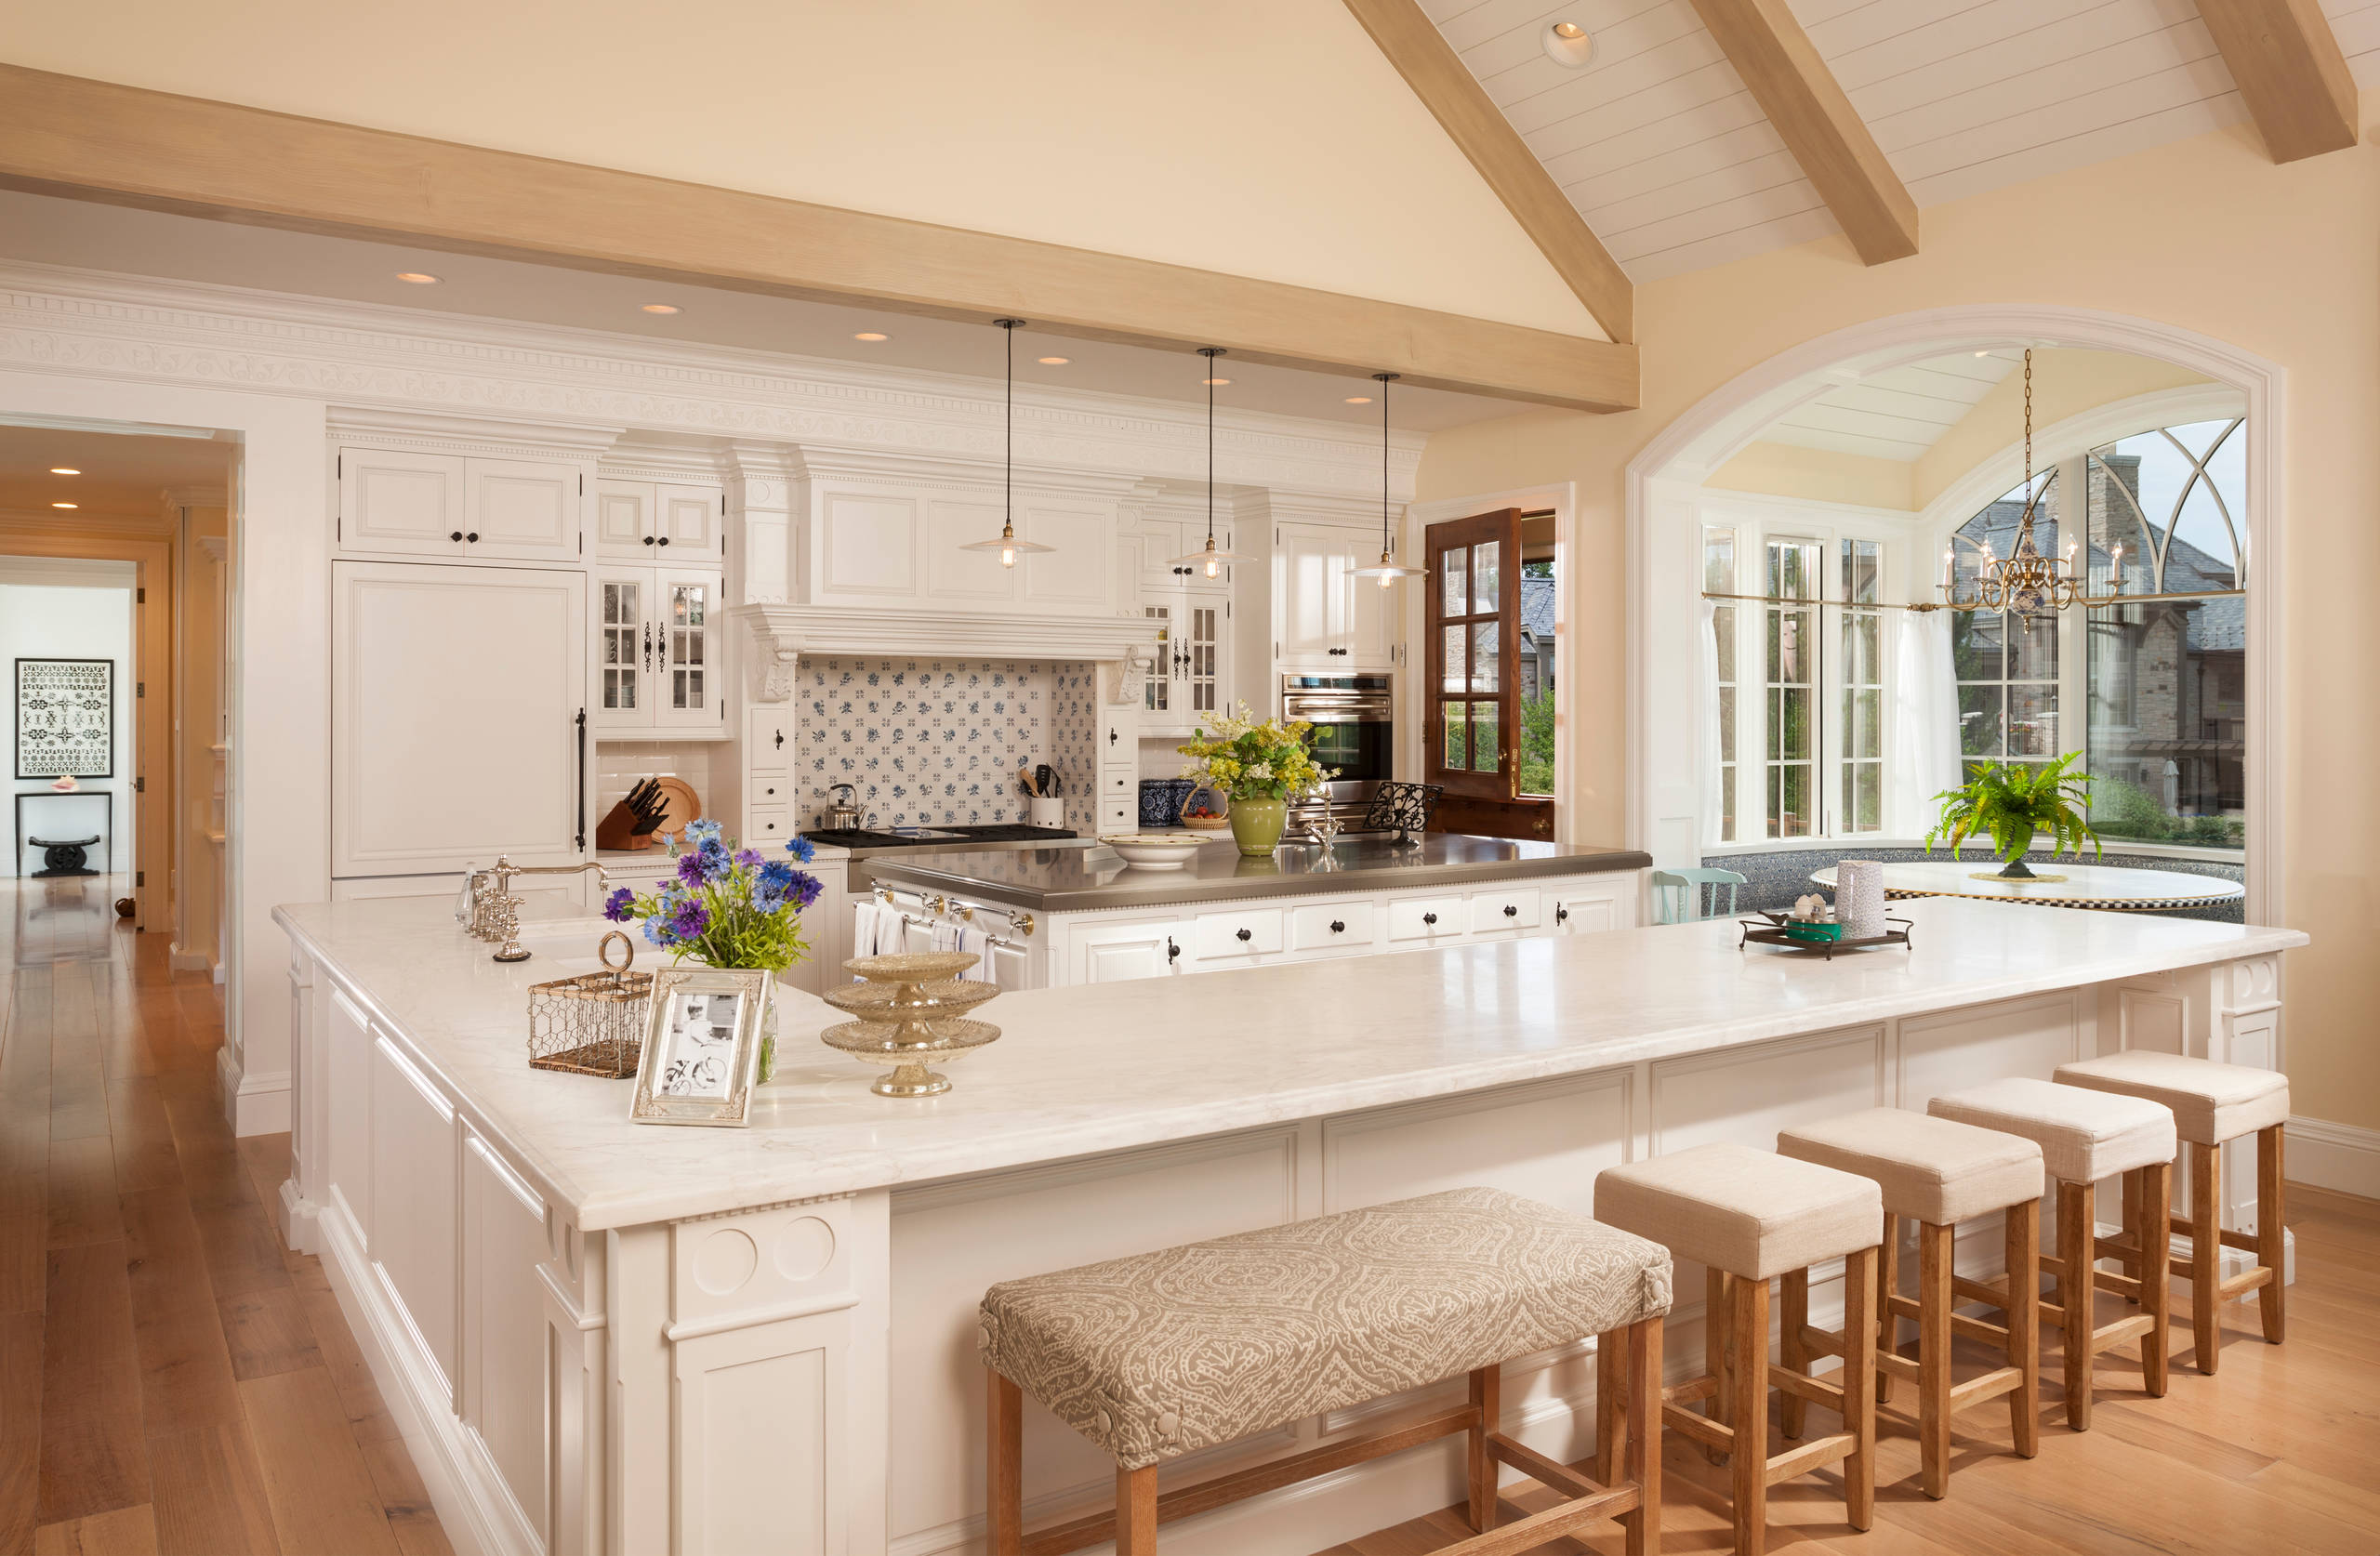 75 Beautiful Traditional Kitchen With Two Islands Pictures Ideas November 2020 Houzz